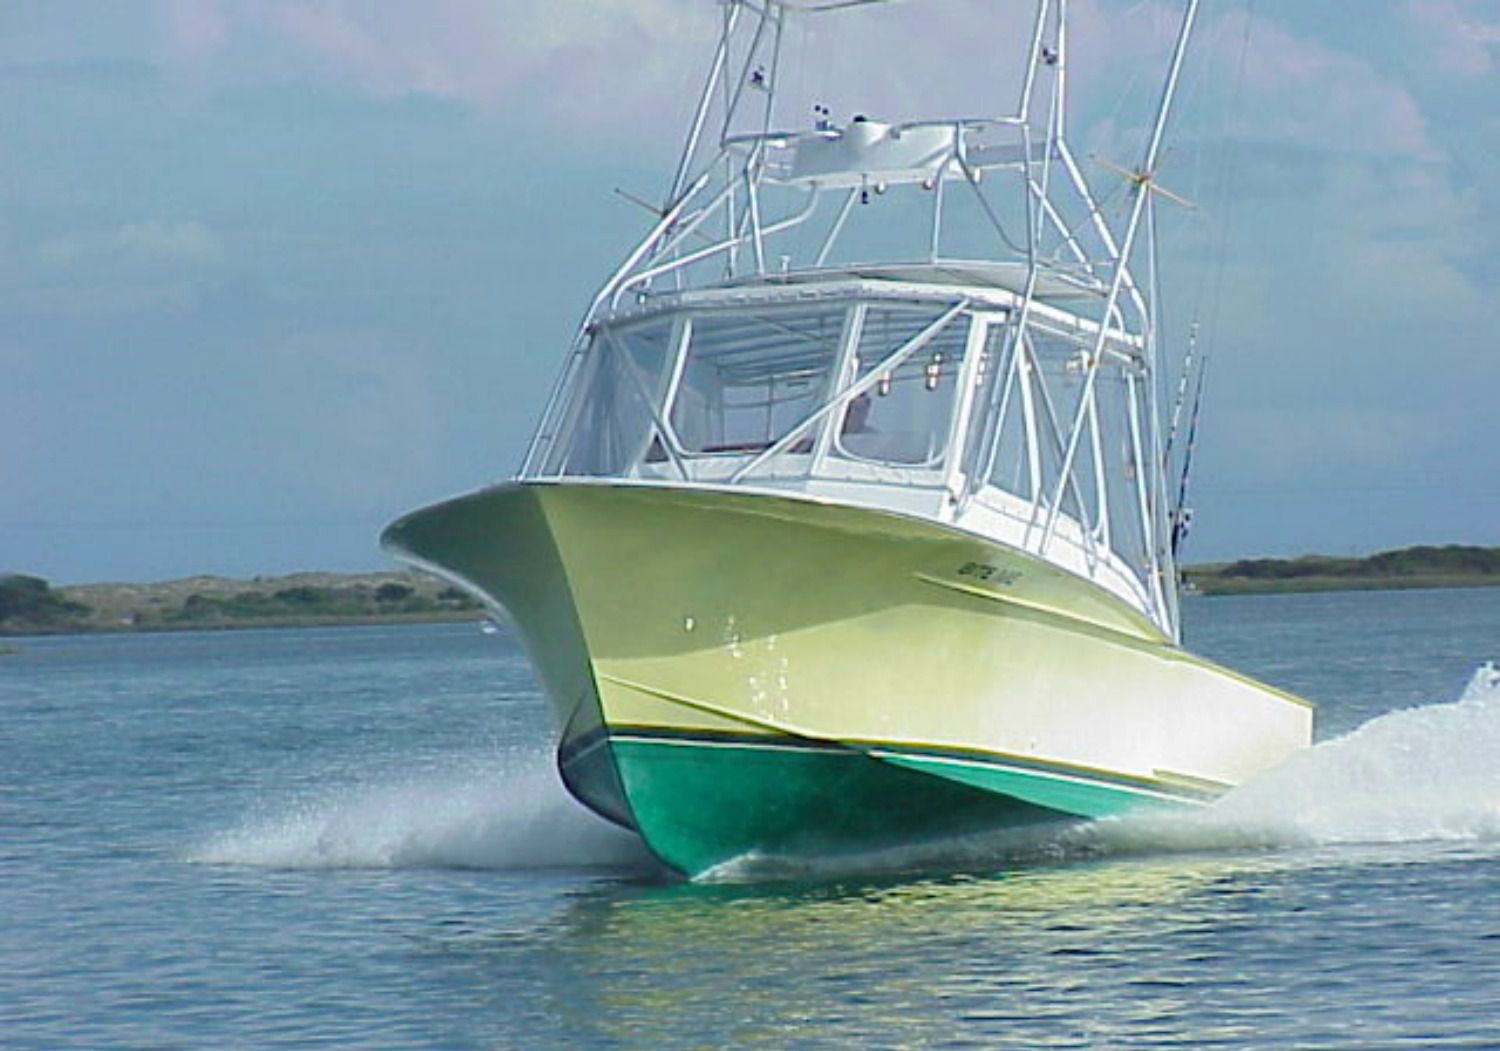 Sportfishing in the Outer Banks